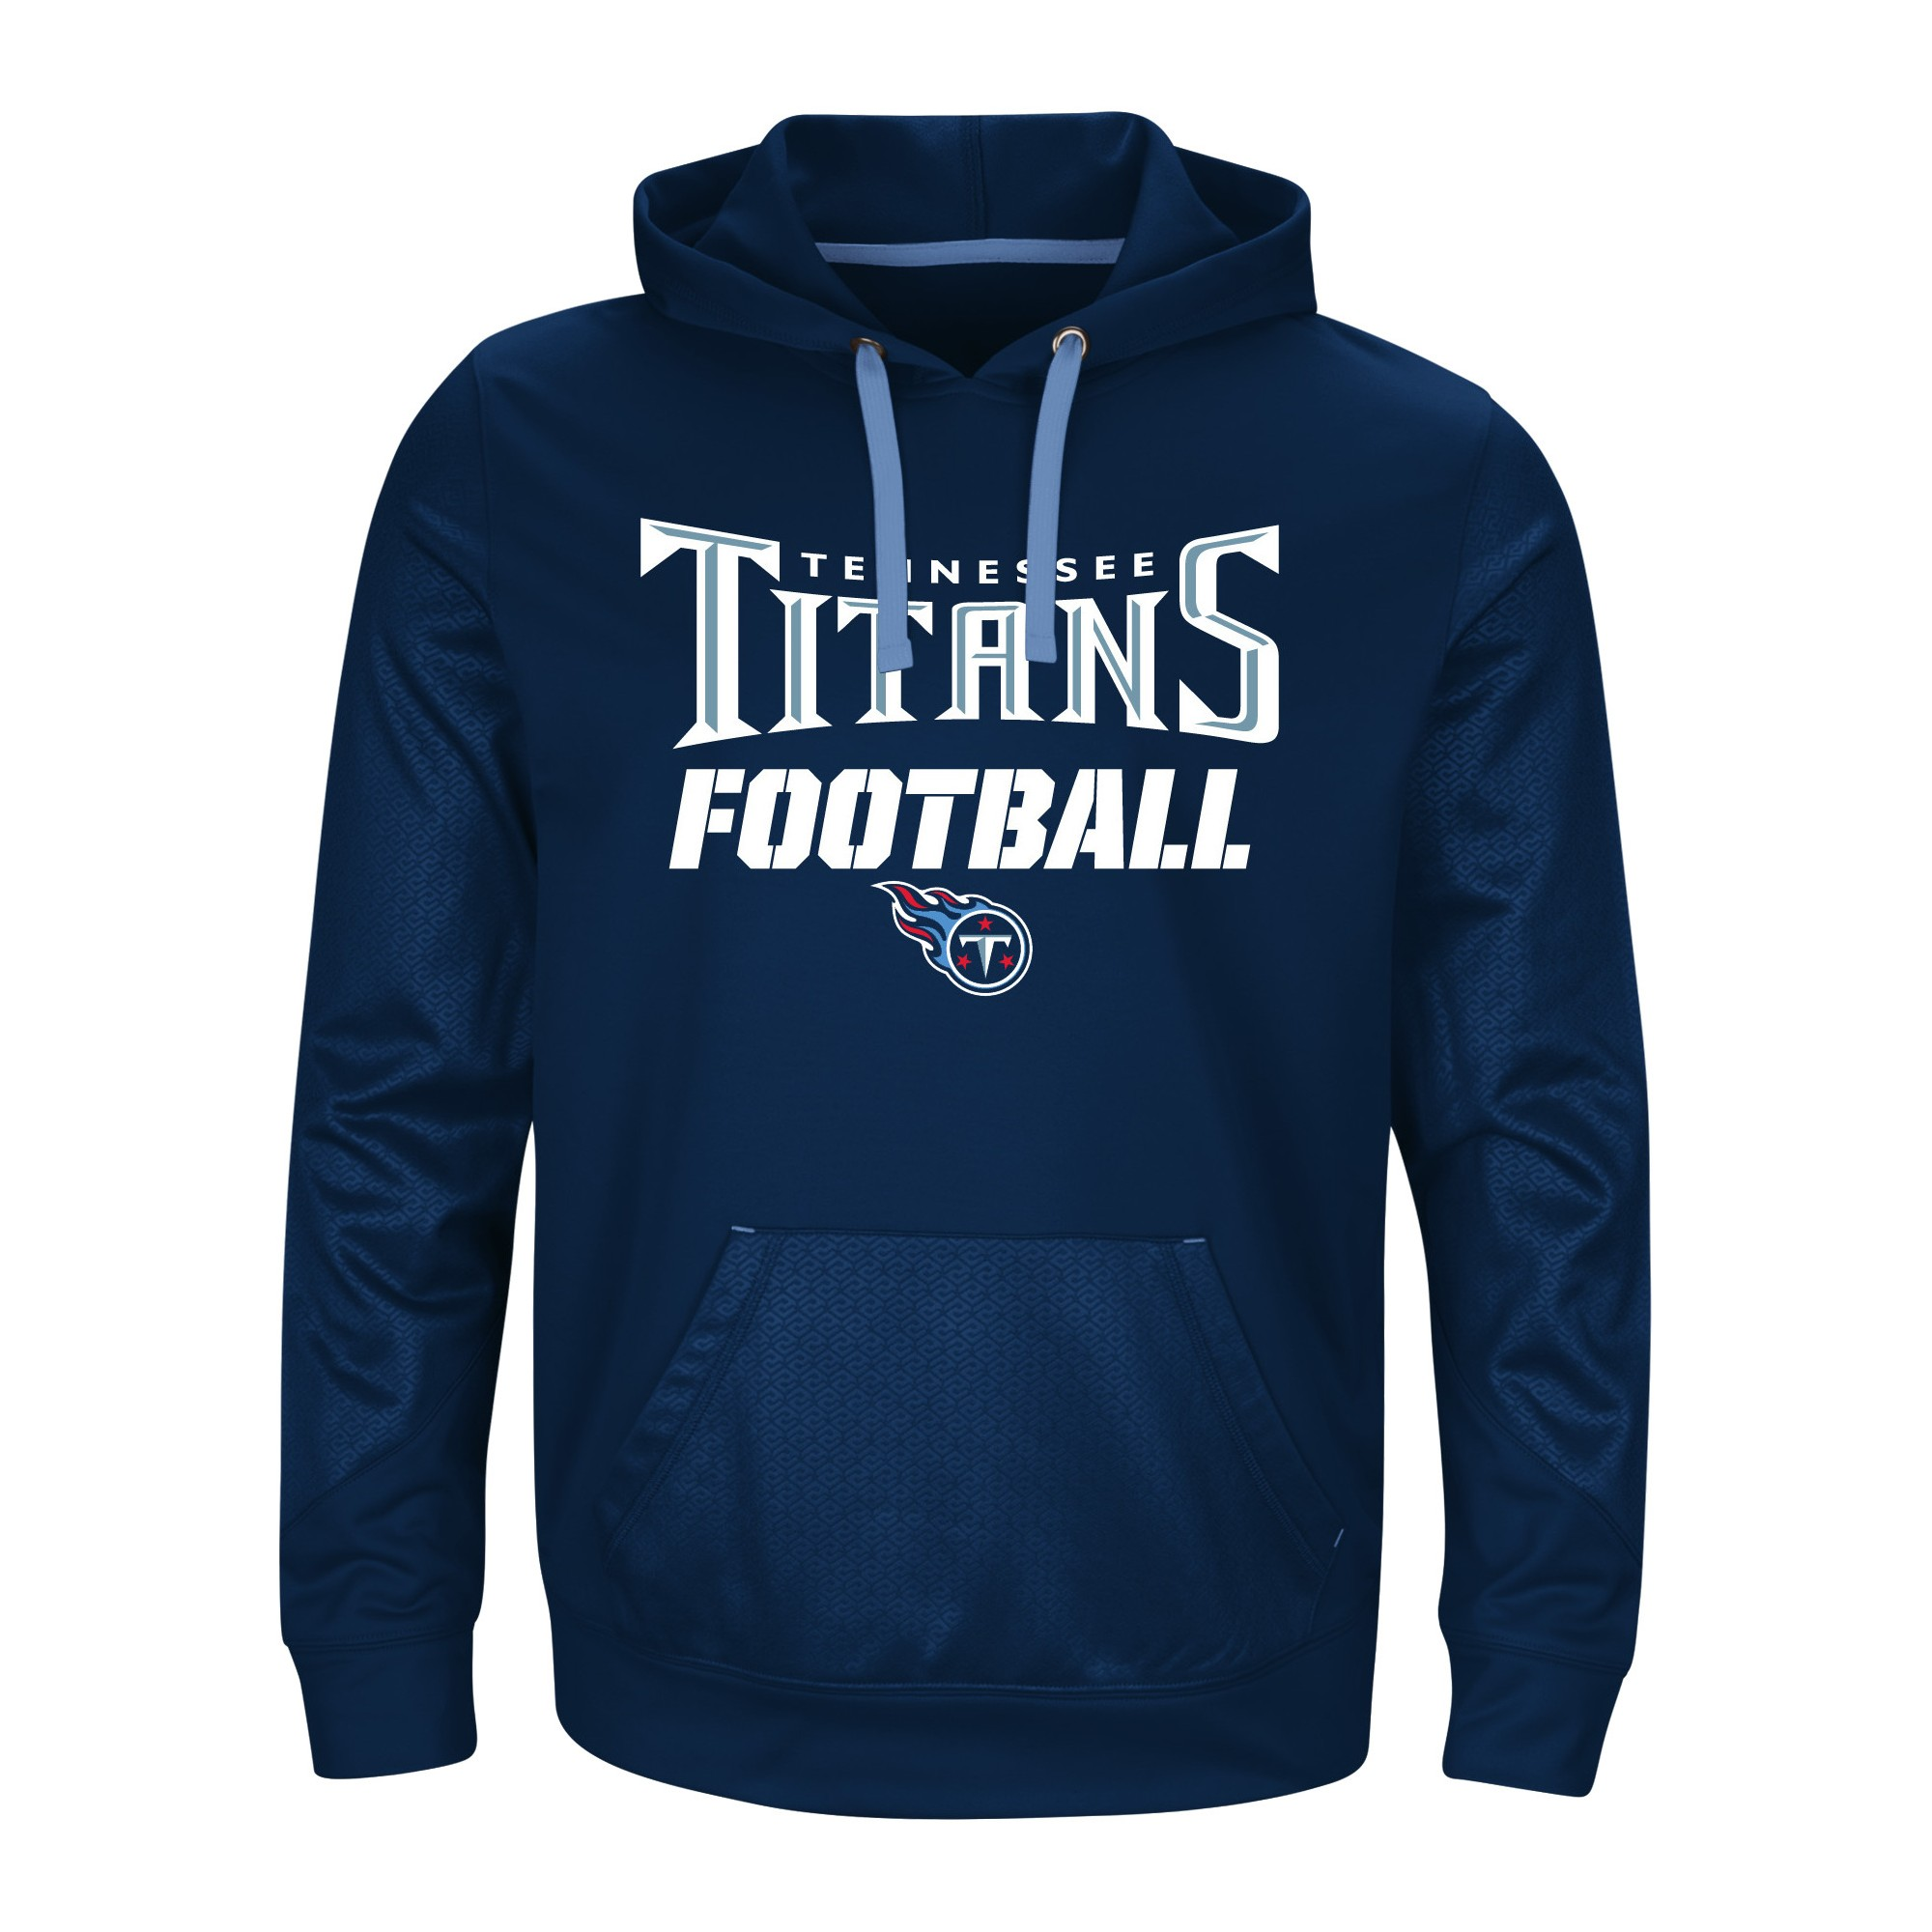 new style ee551 7e9e4 Tennessee Titans Activewear Sweatshirt L, Size: Large, TEAM ...